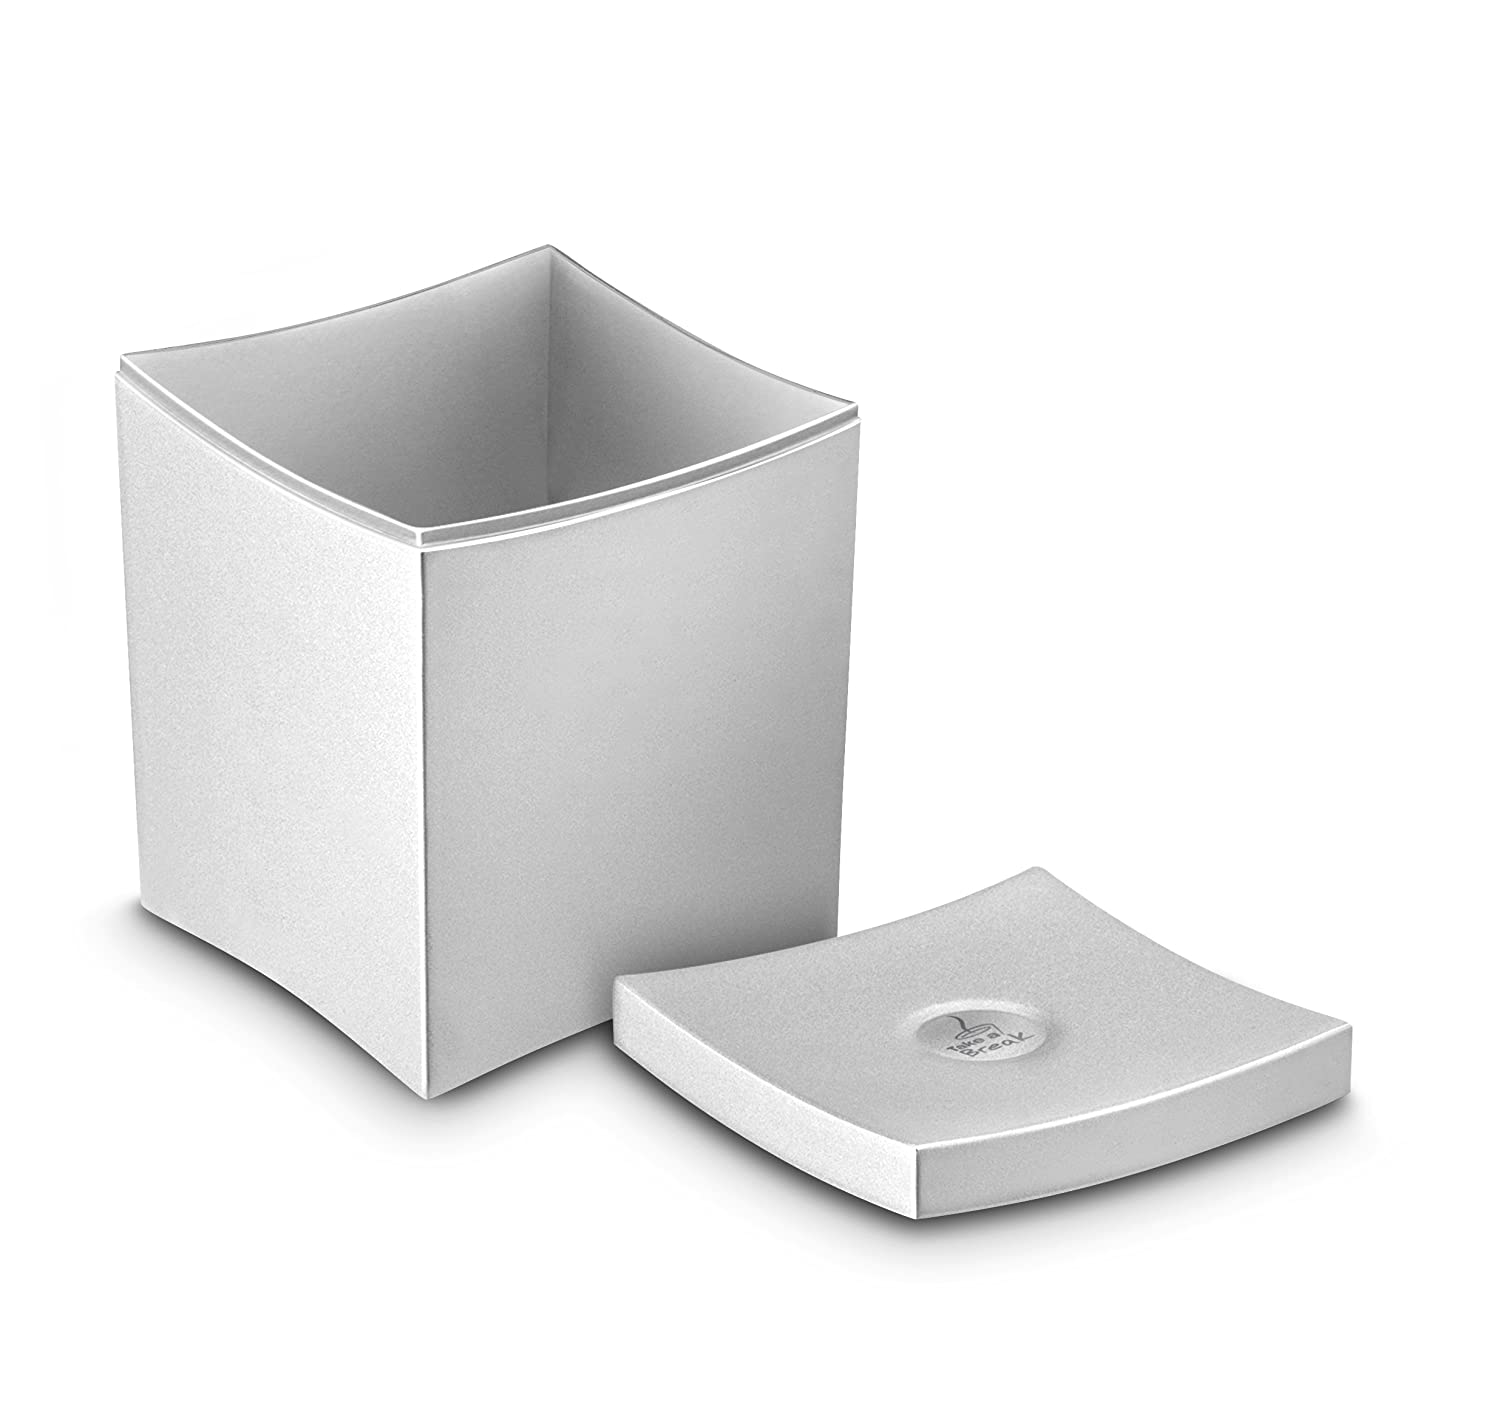 CEP Polystyrene Sweet Box, Crystal CEP Office Solutions 1012100111